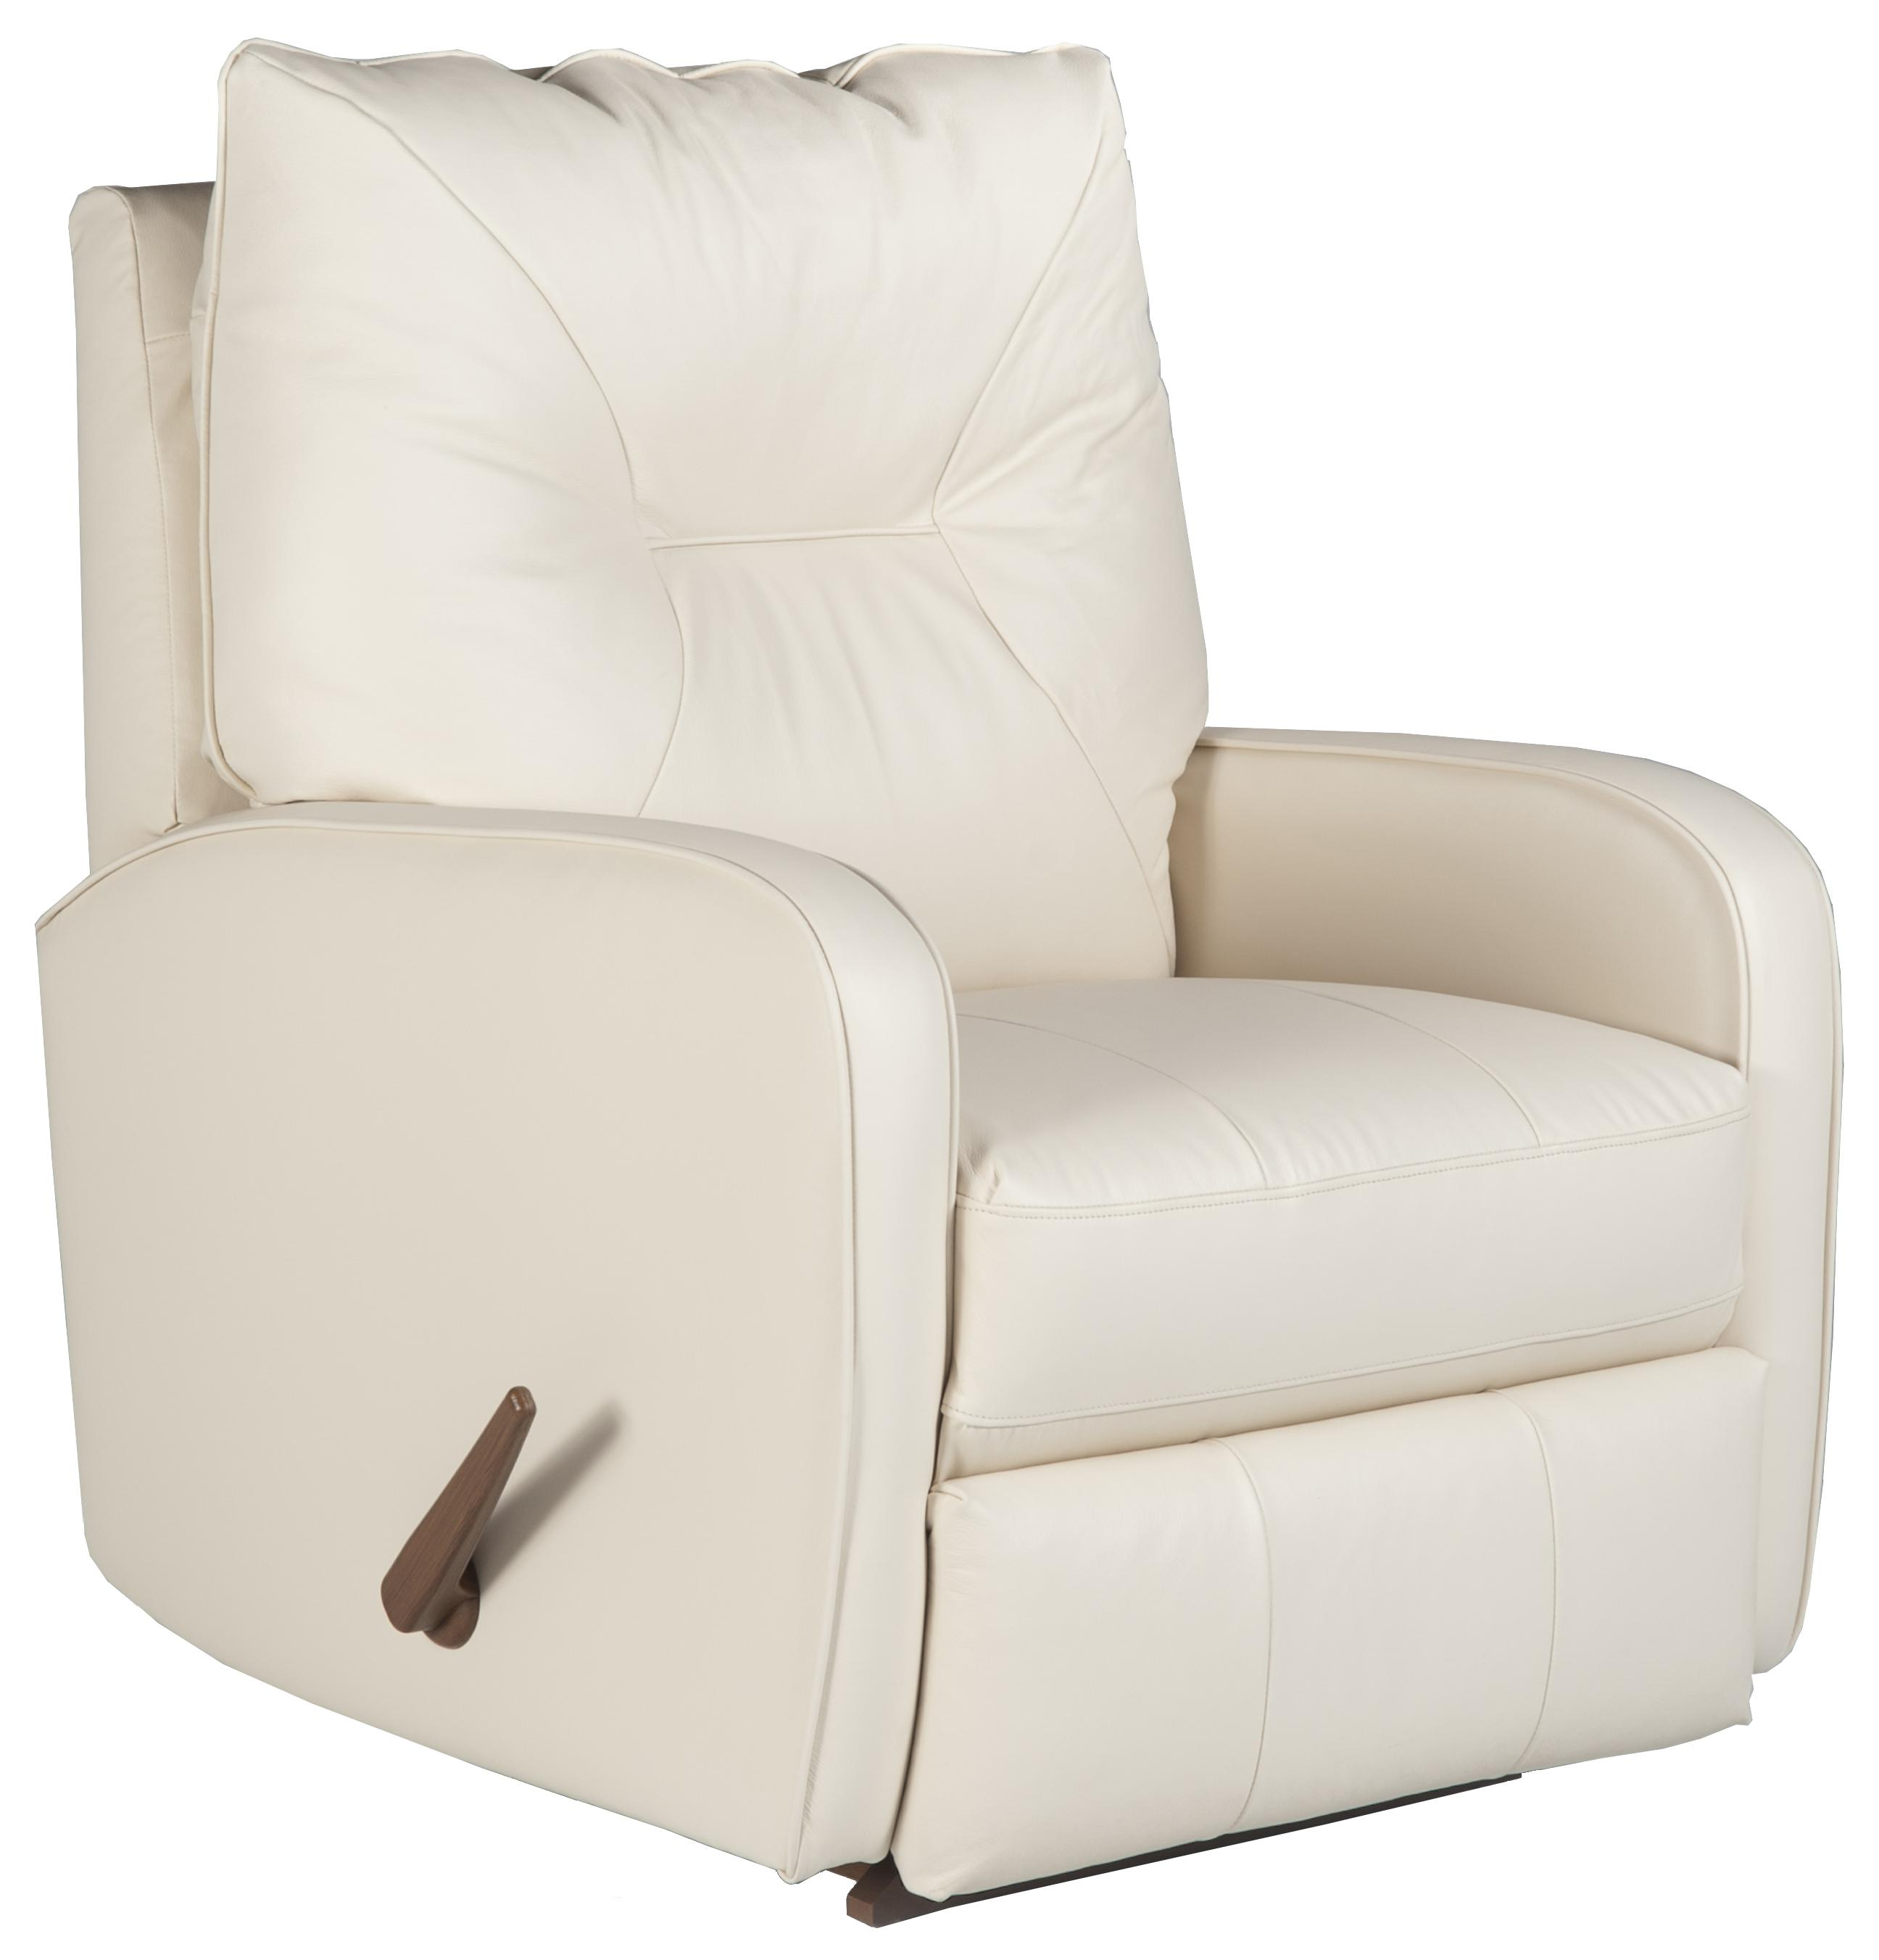 Recliners medium contemporary ingall swivel rocker for Best furnishings